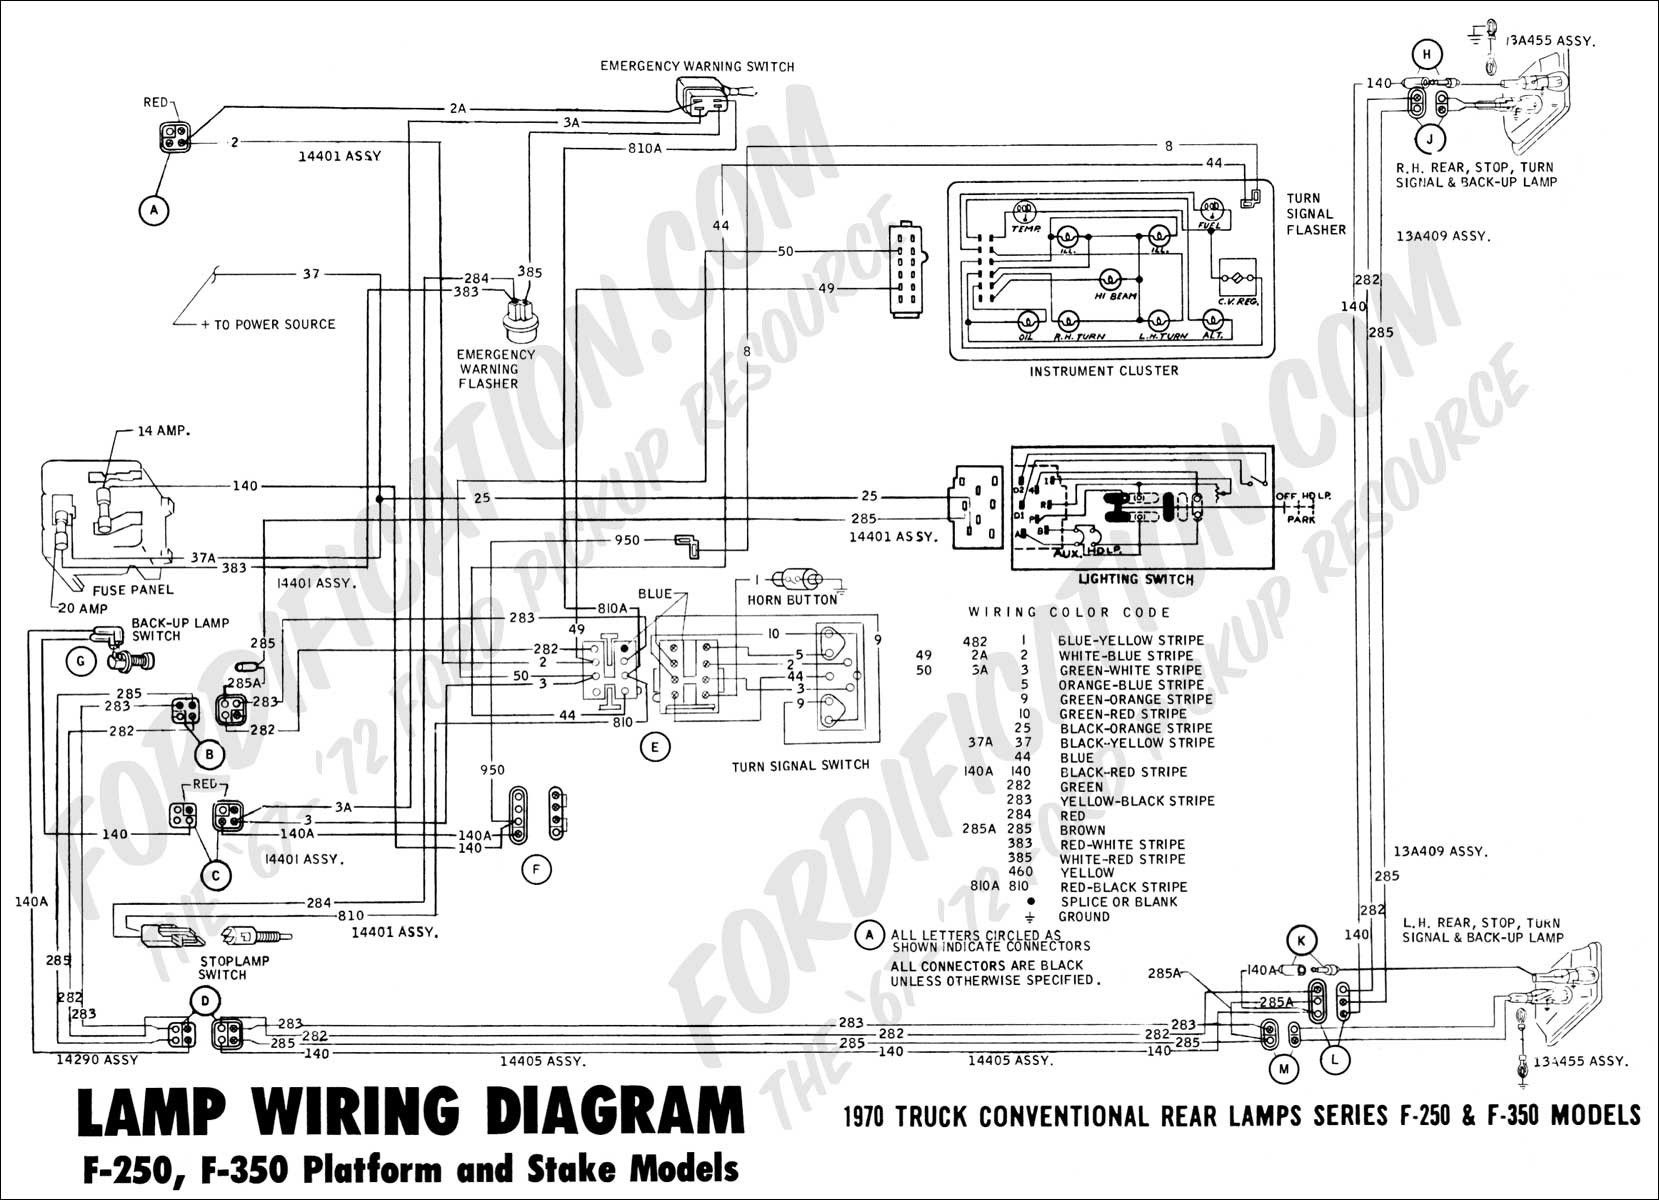 1986 f250 tail light wiring diagrams wire center 2001 ford f250 alternator wiring  diagram 2001 ford